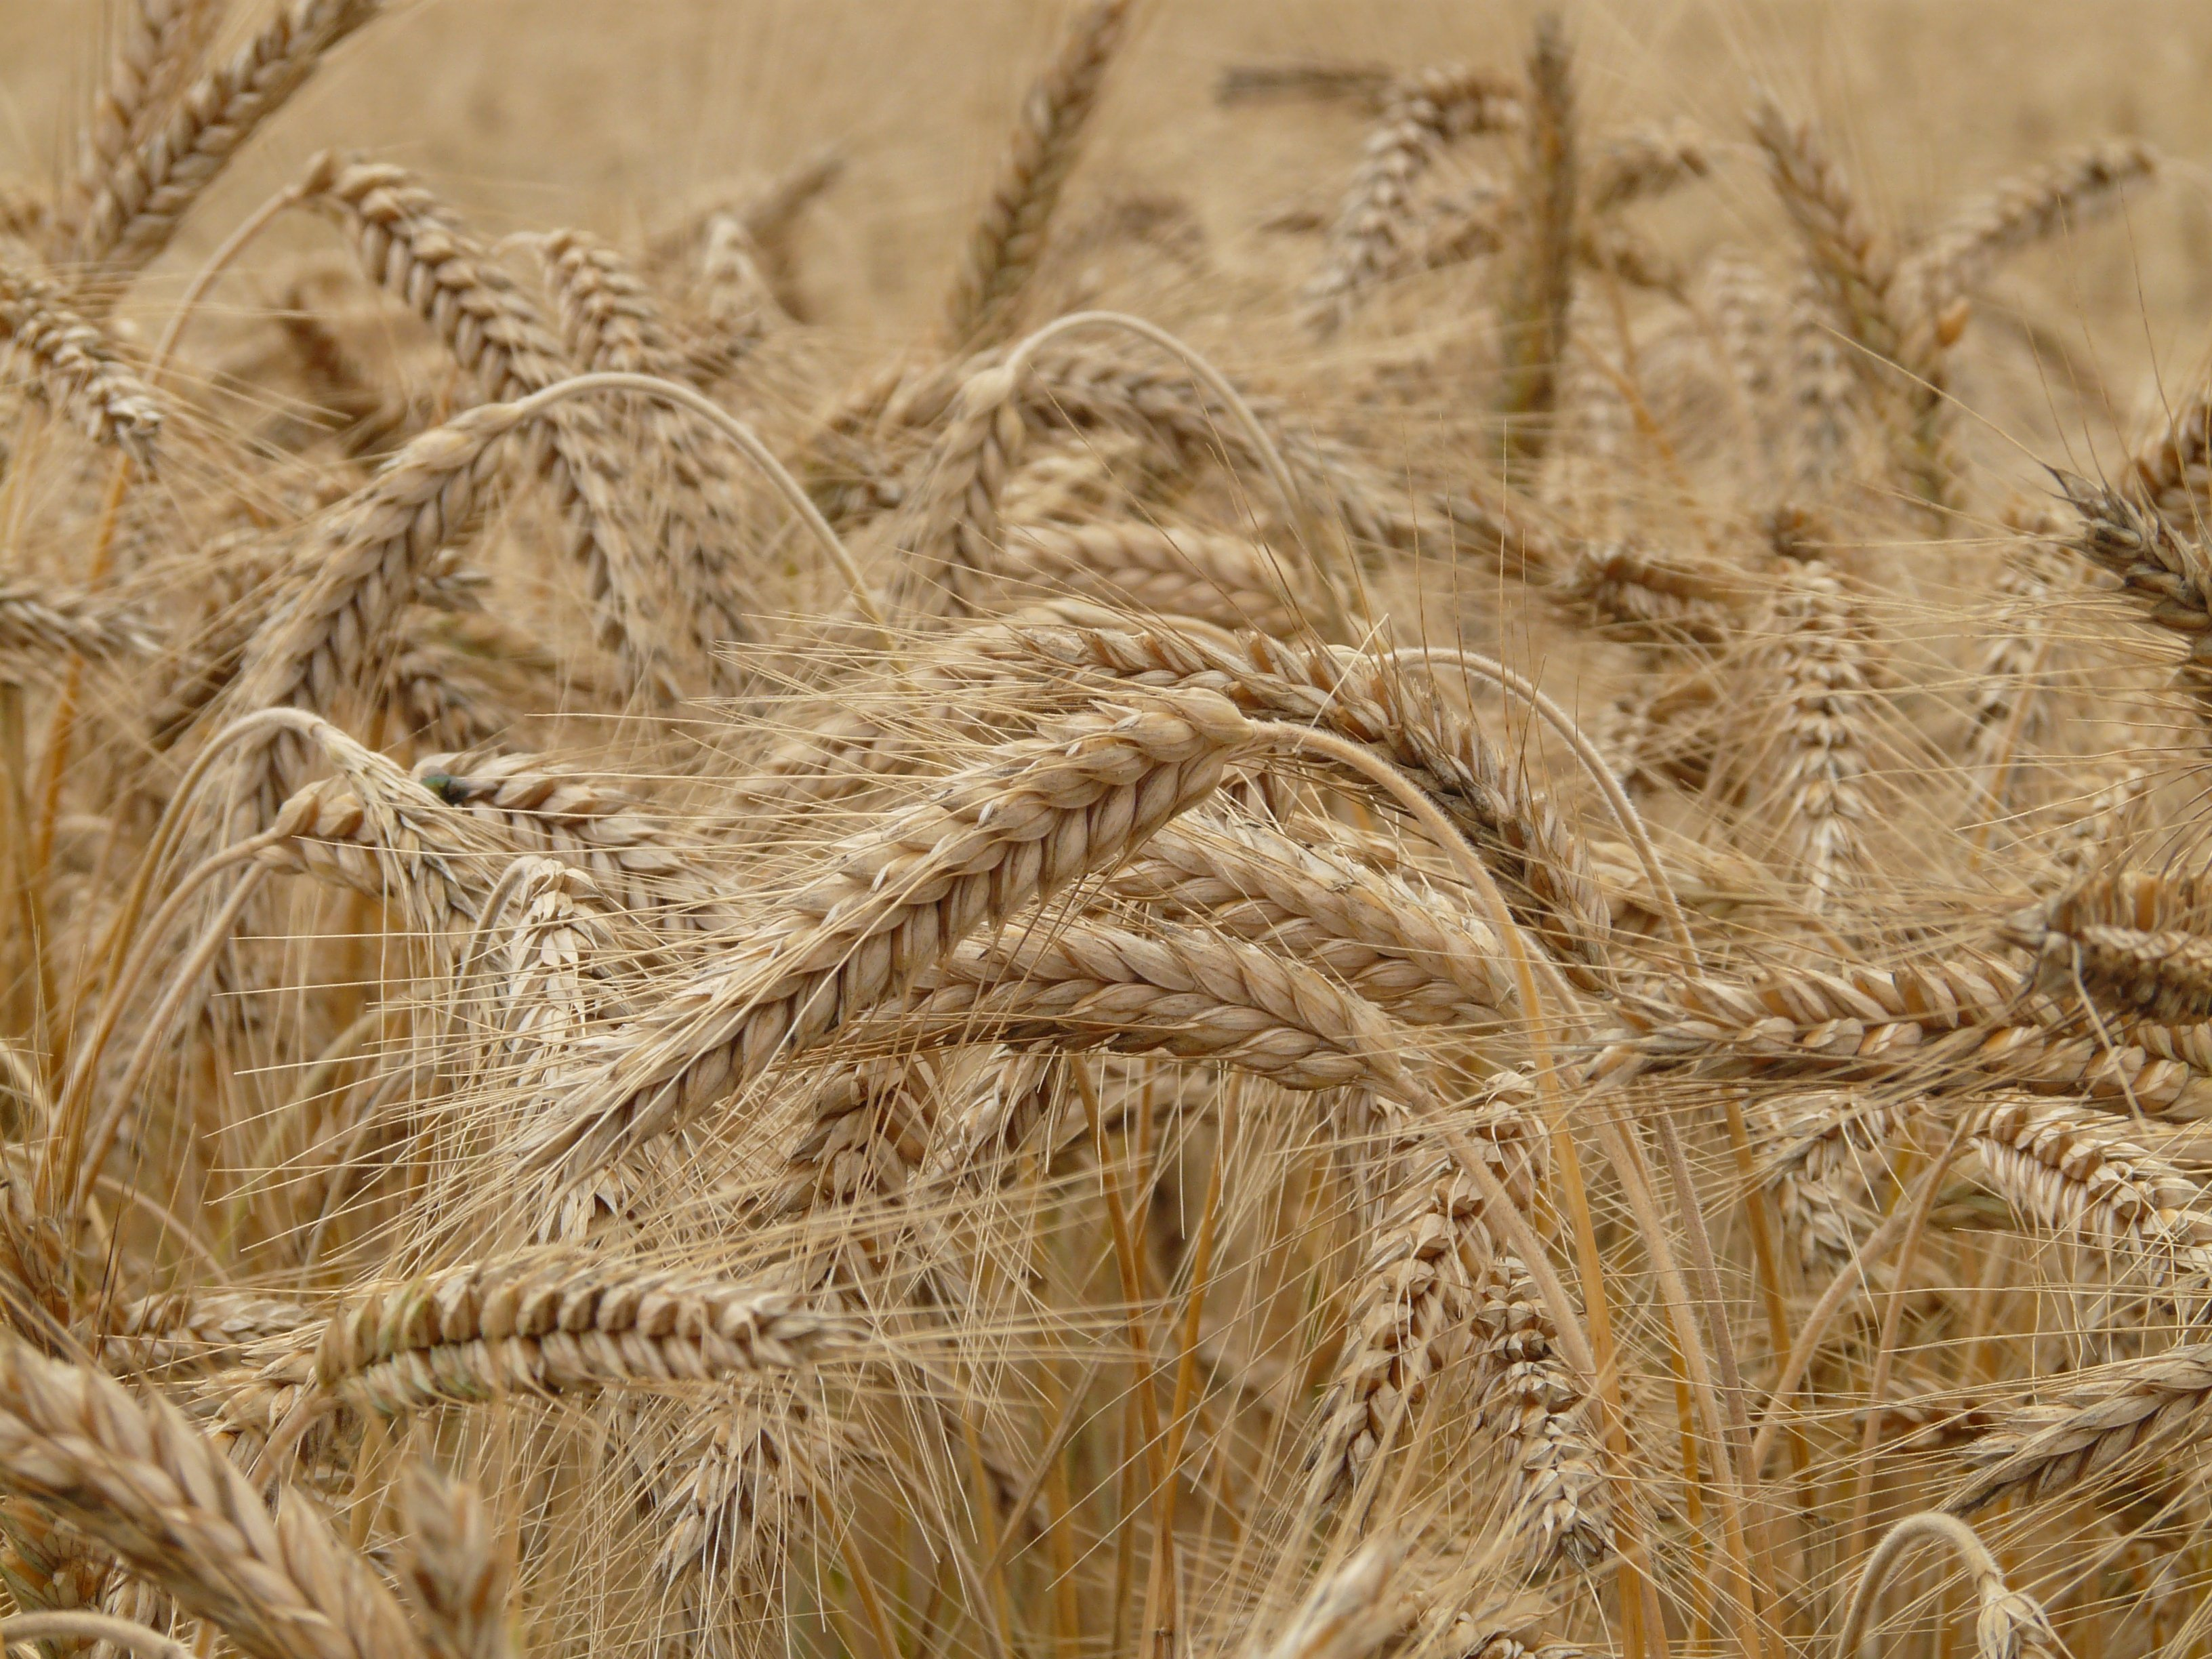 Gluten Intolerance is on the rise